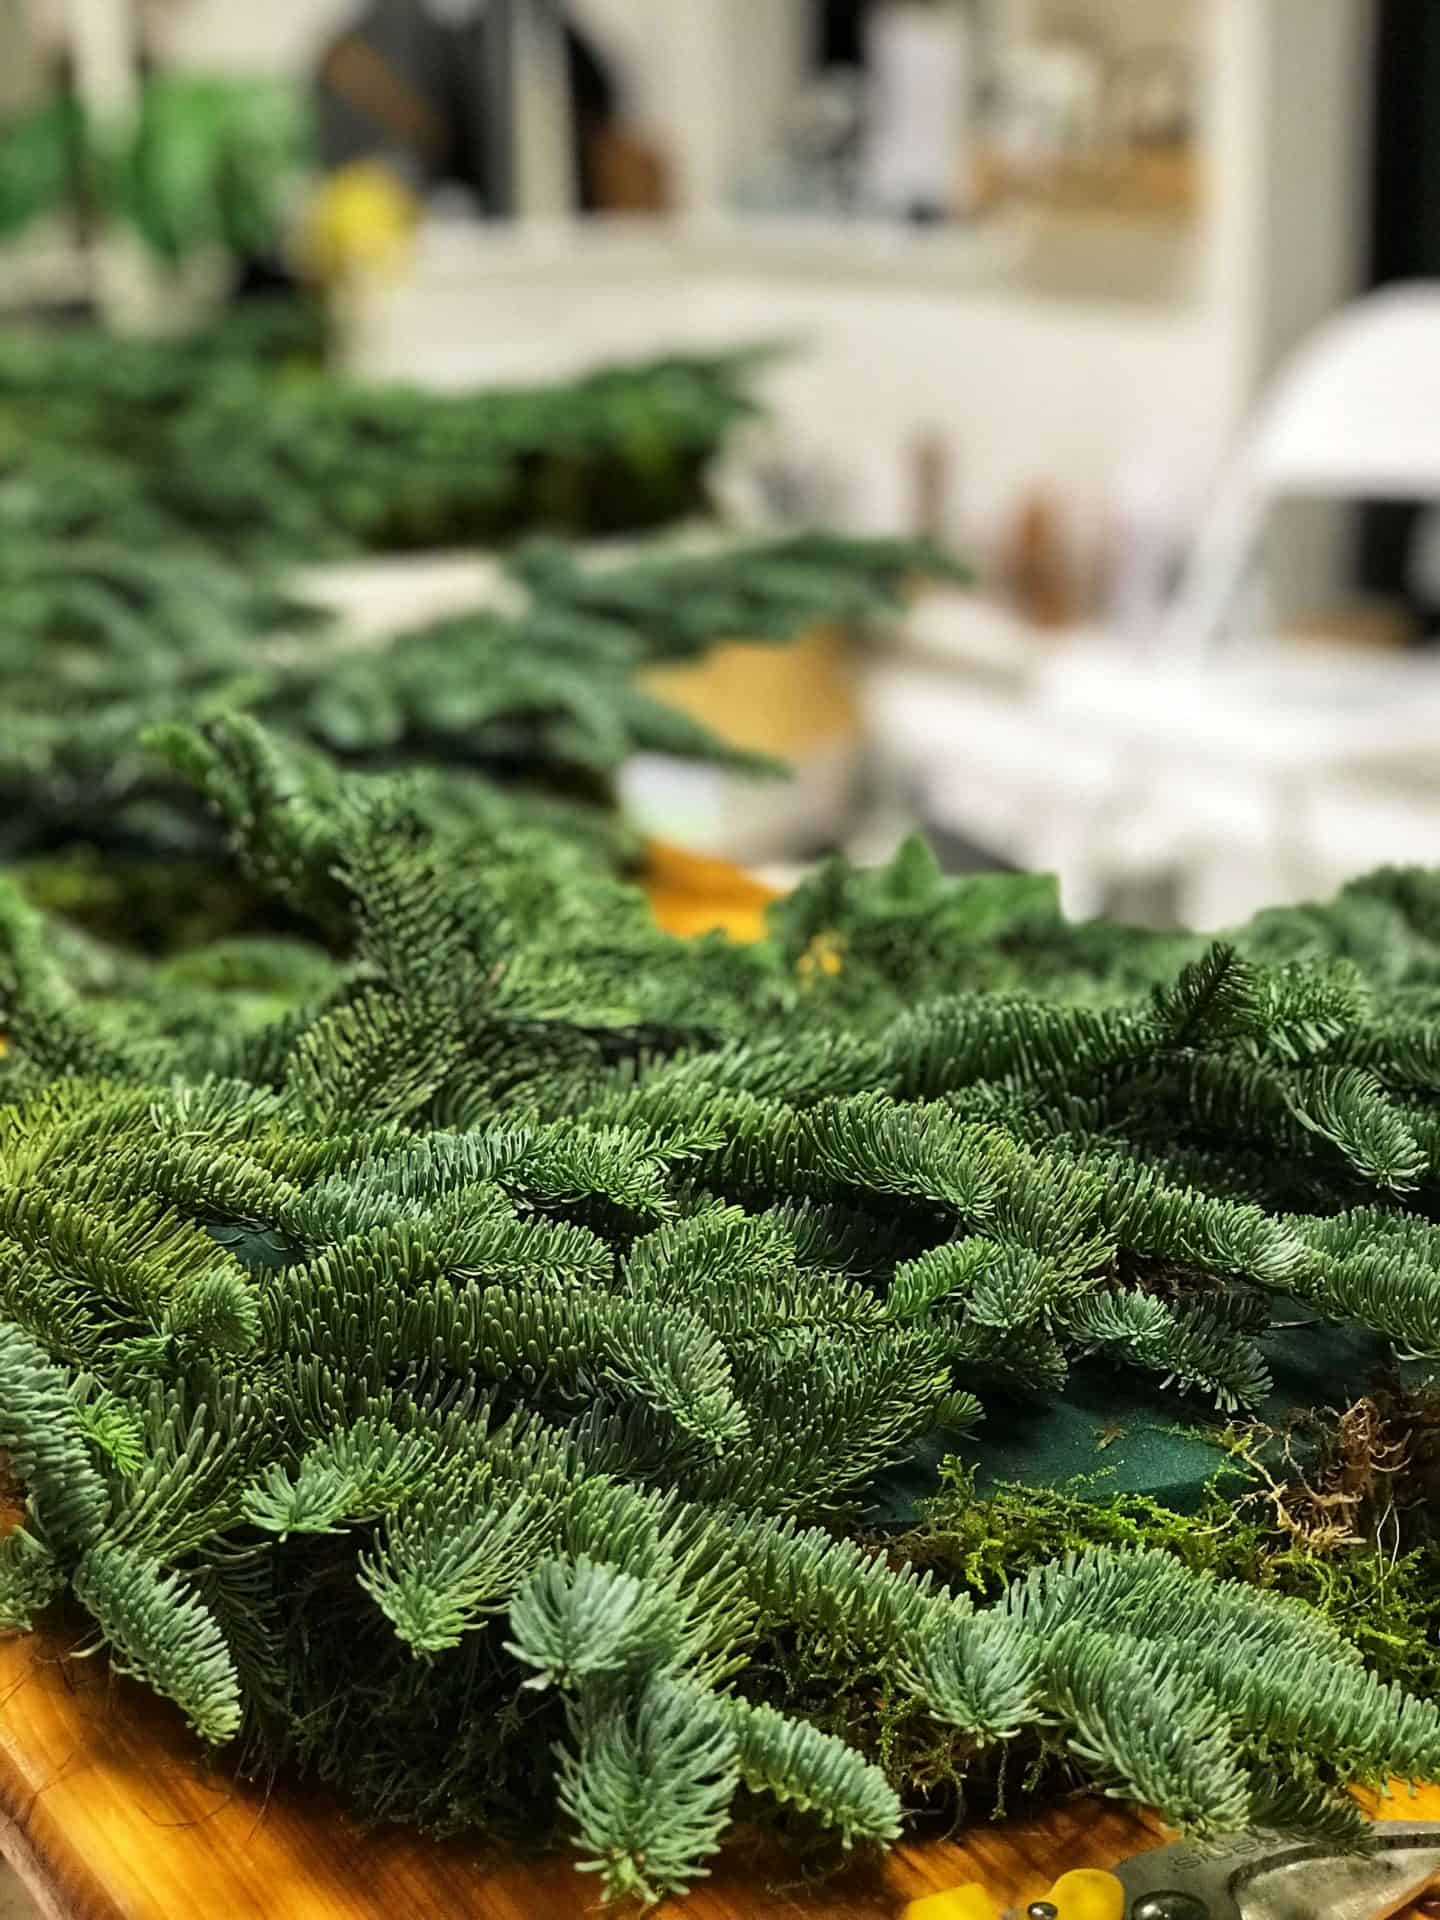 Fir tree trimmings